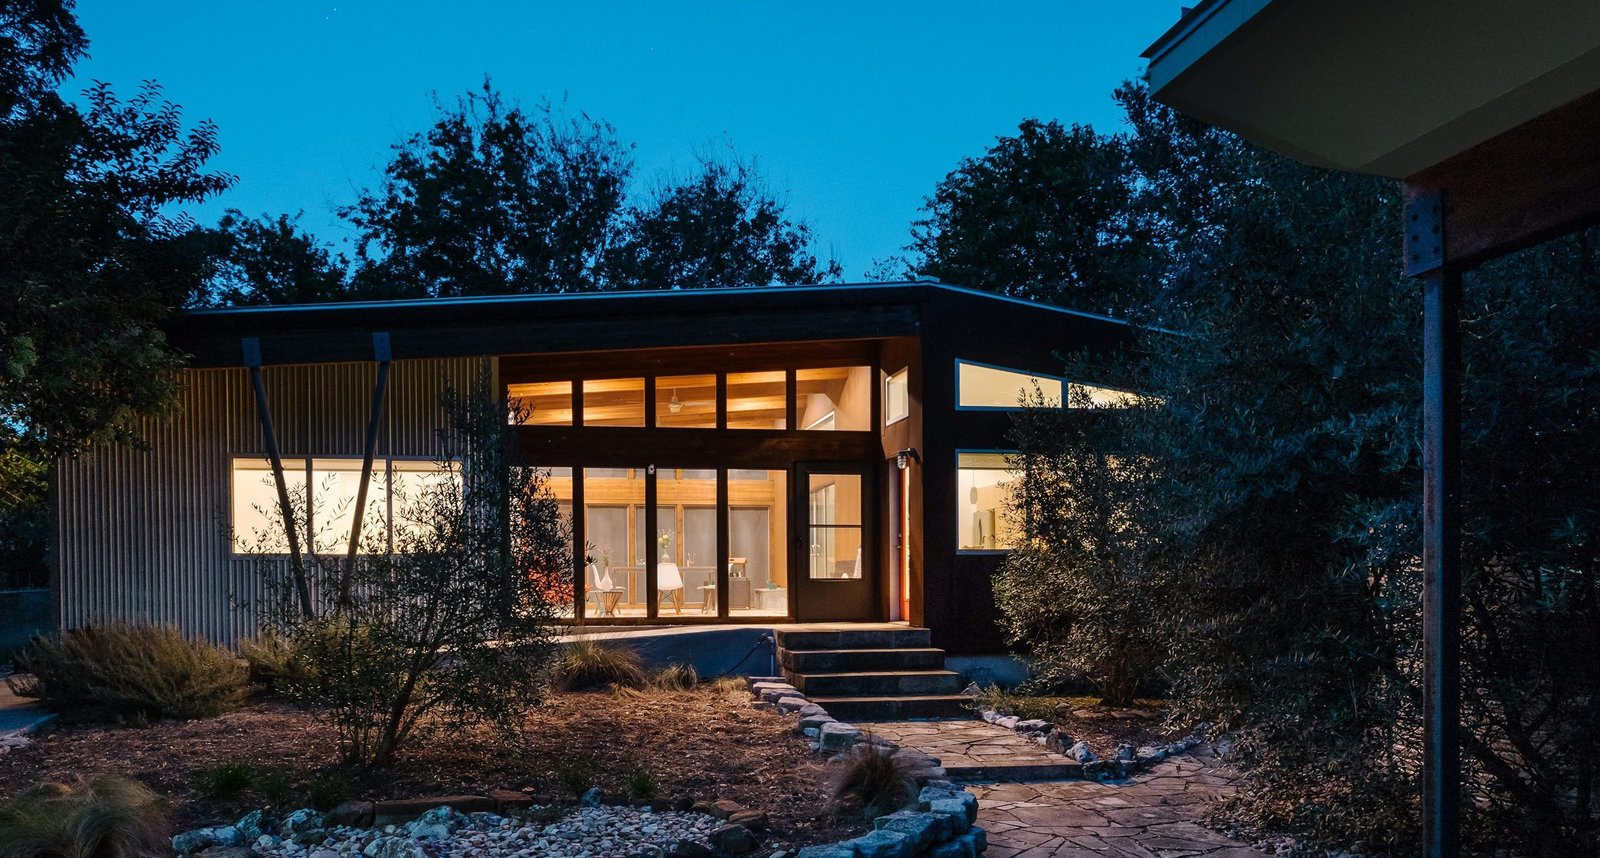 The Ultimate Guide to Prefab: 65 Resources by Location, Construction, and Price